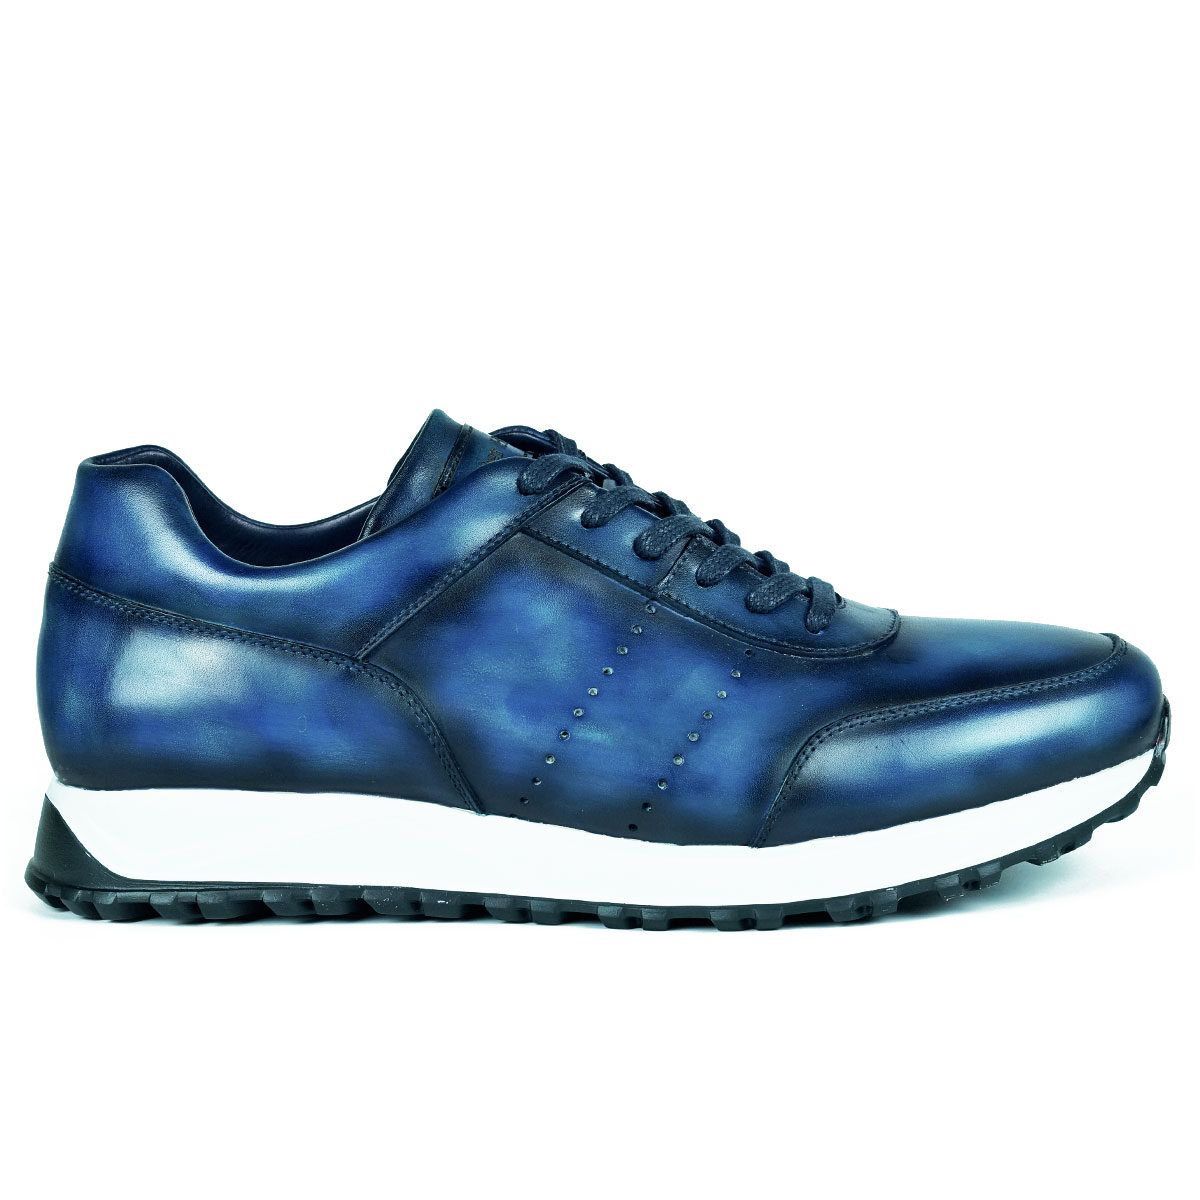 Mens Navy Sneakers Shoes